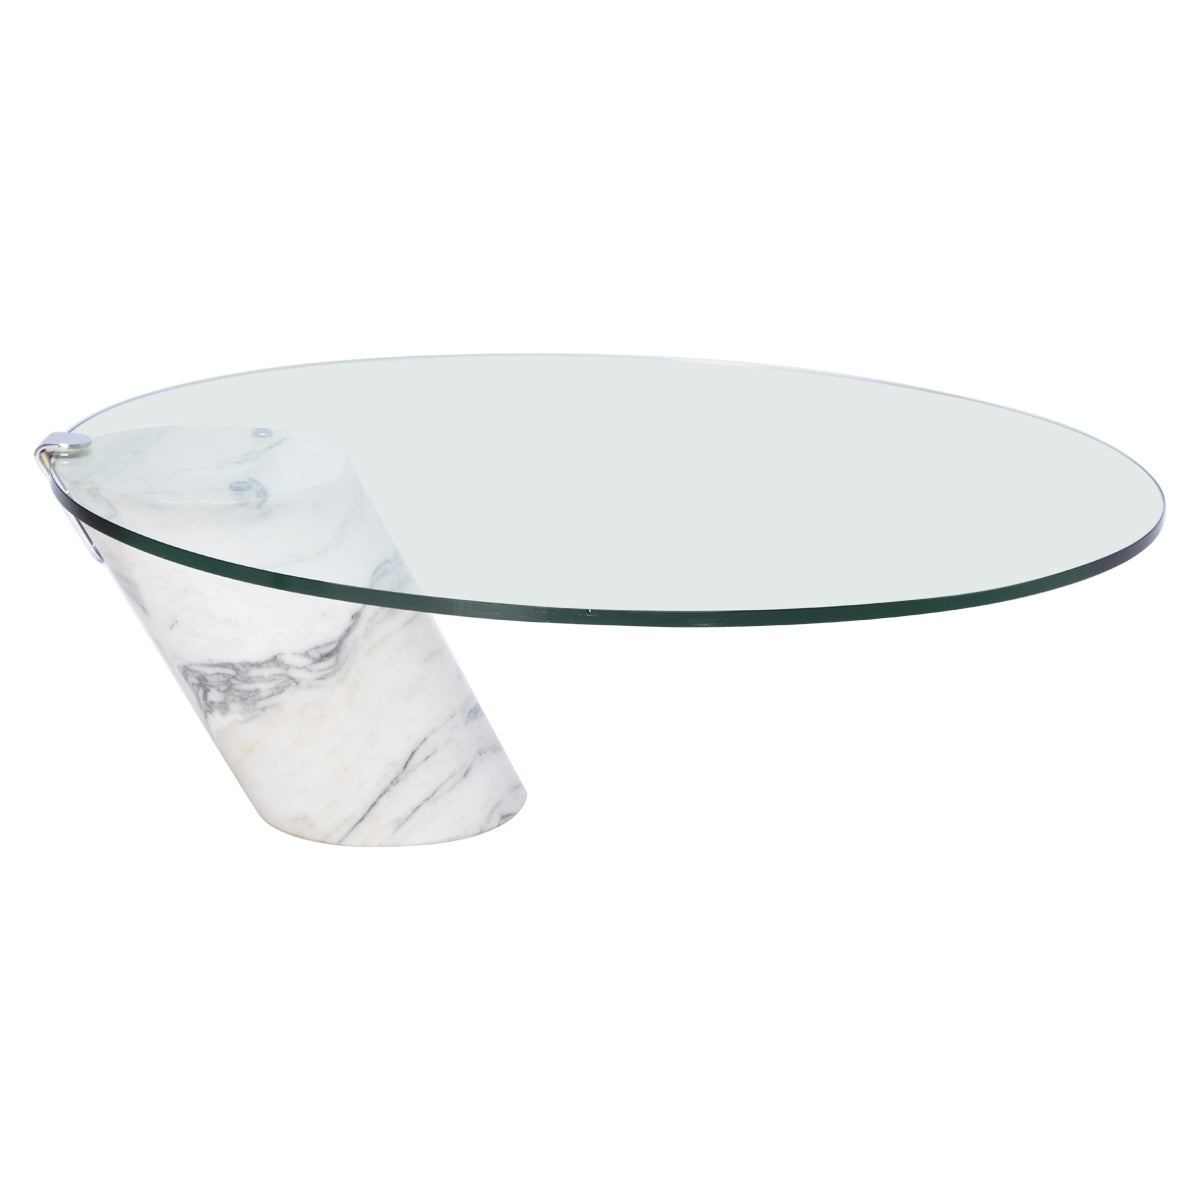 White Marble and Glass Coffee Table Model K1000 by Team Form for Ronald Schmitt